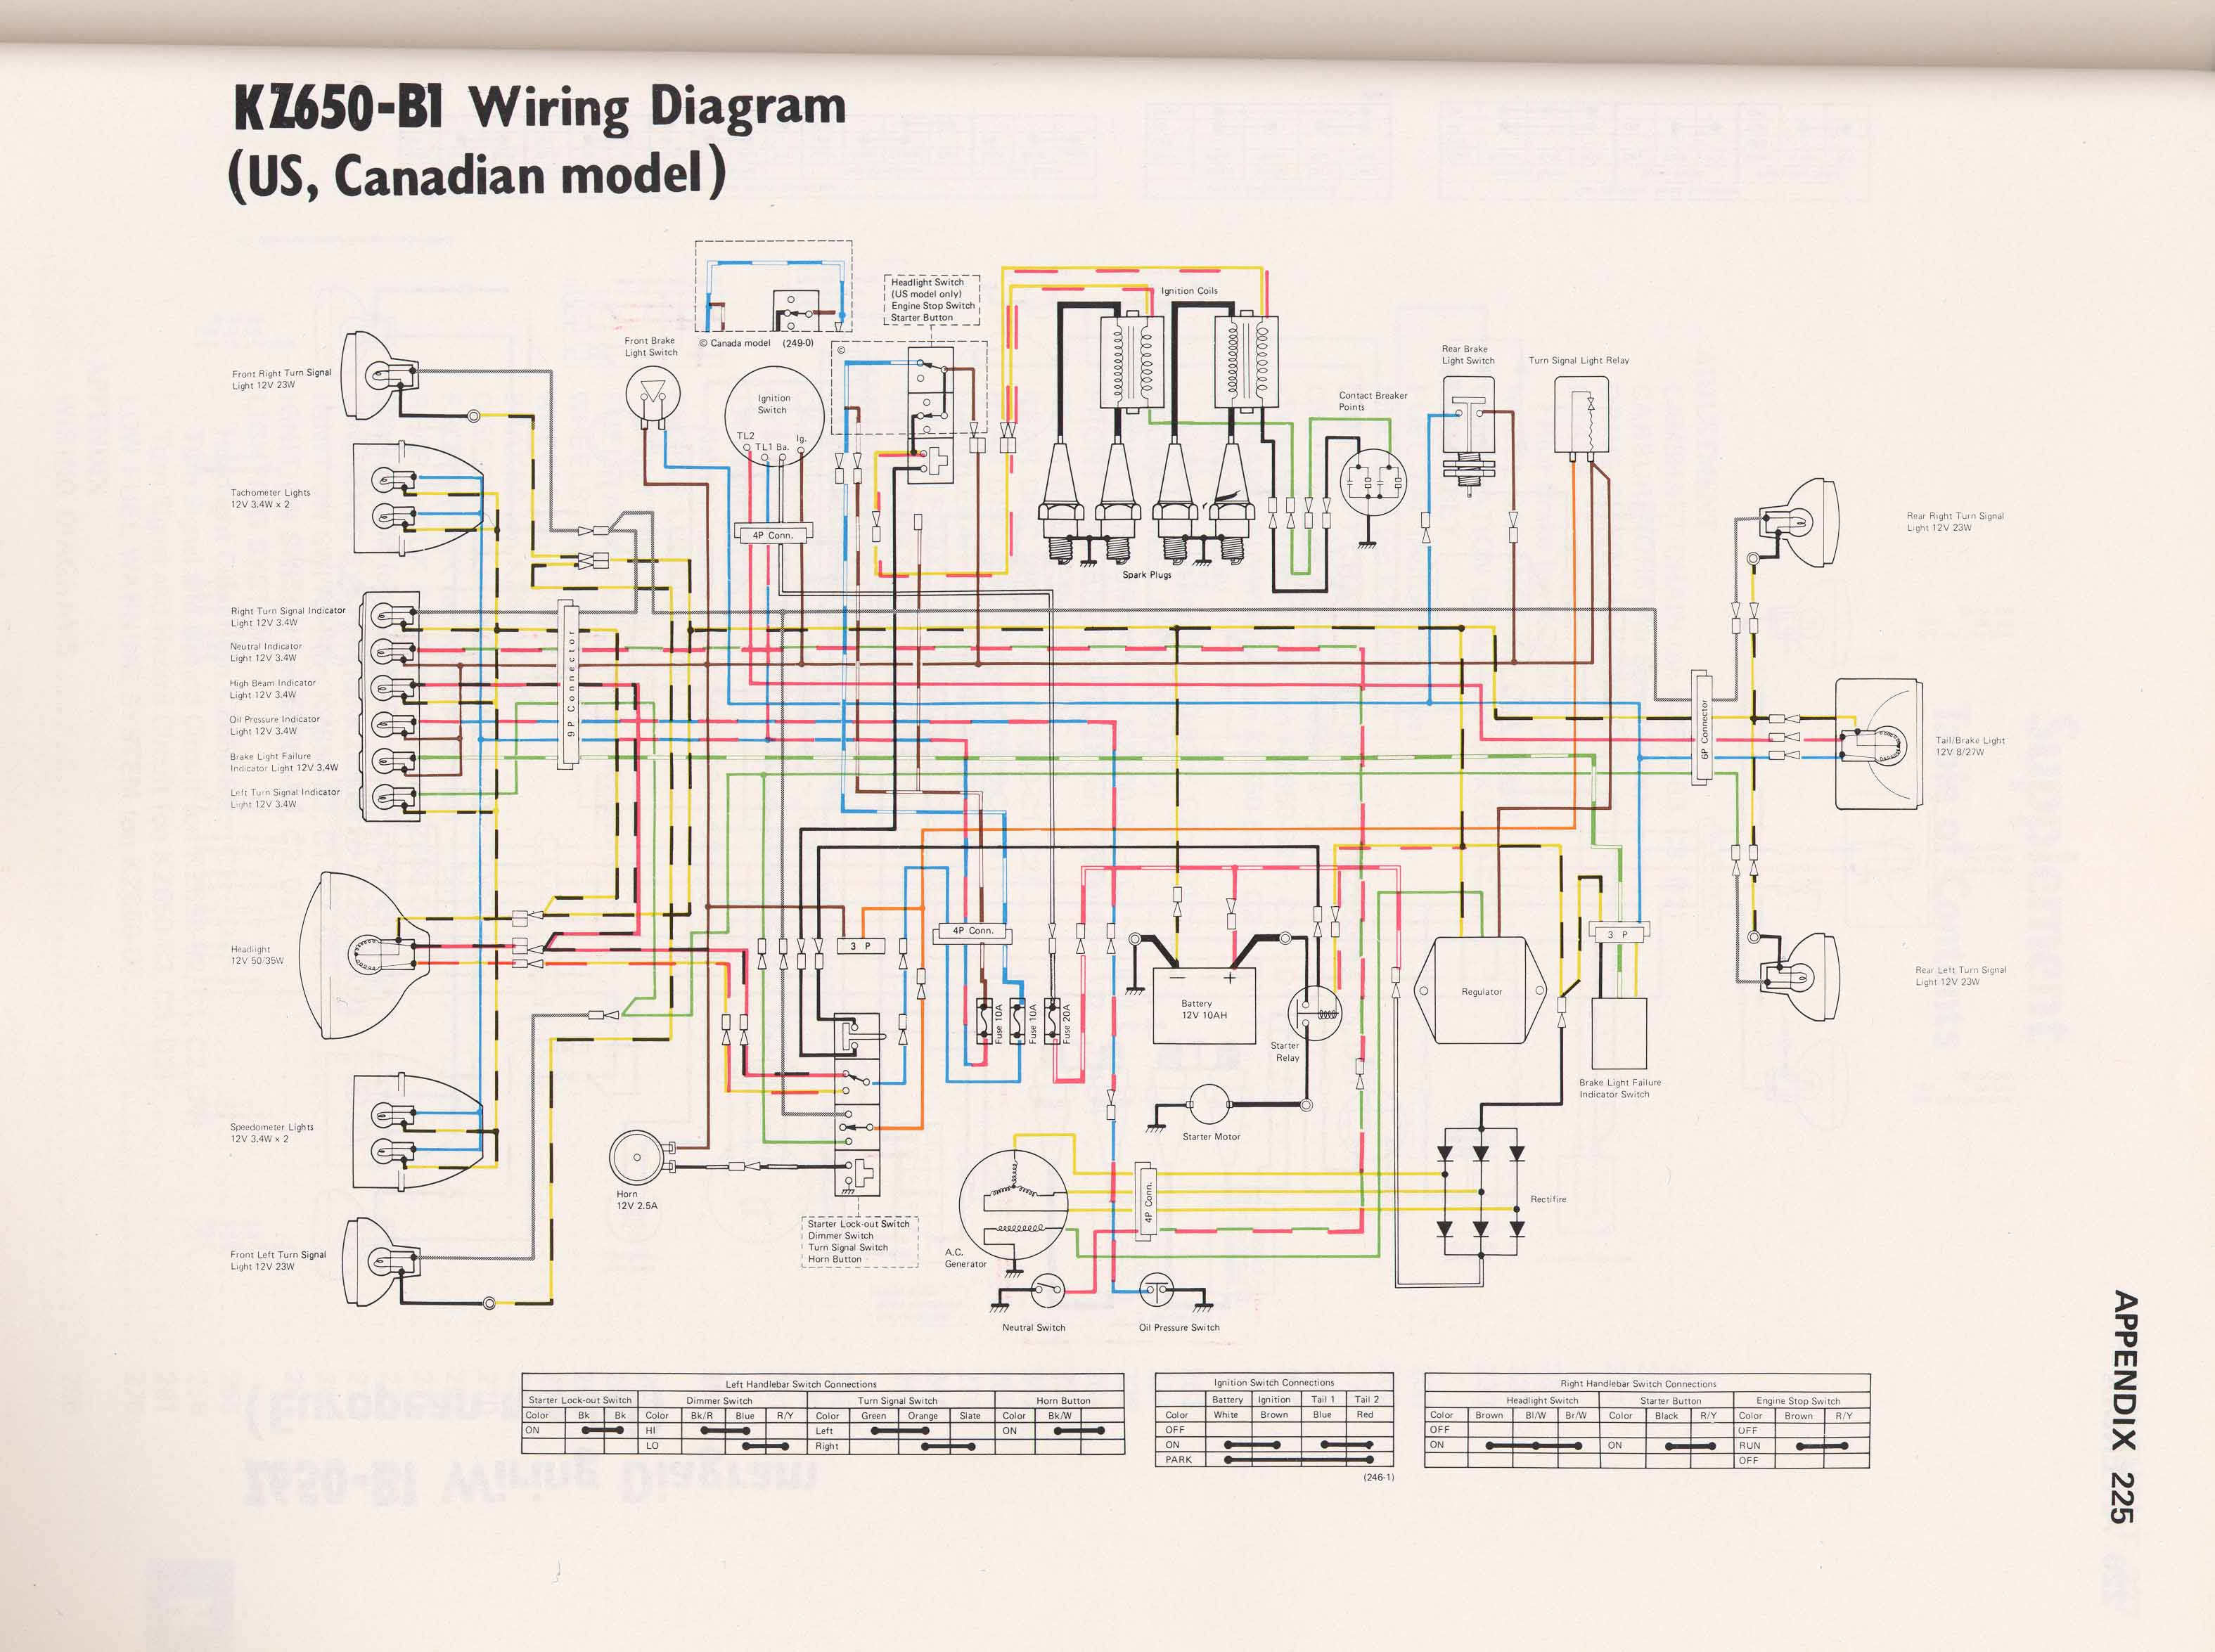 kz wiring diagram kz info wiring diagrams v to v swap for a kz info wiring diagrams kz650 wiring diagrams